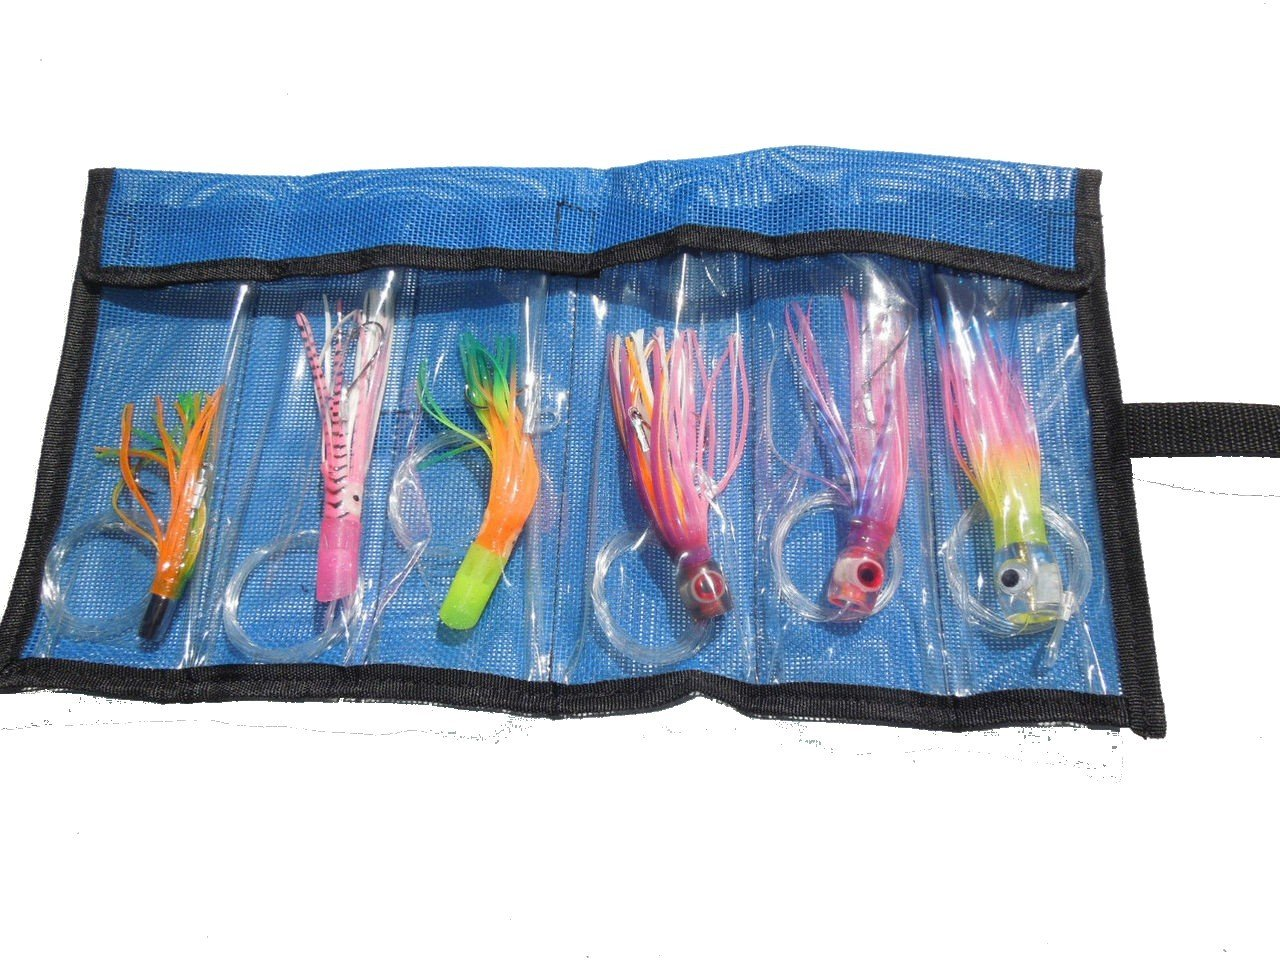 Offshore fishing lures billfish bonanza 6 pack Marlin Devils by EAT MY TACKLE